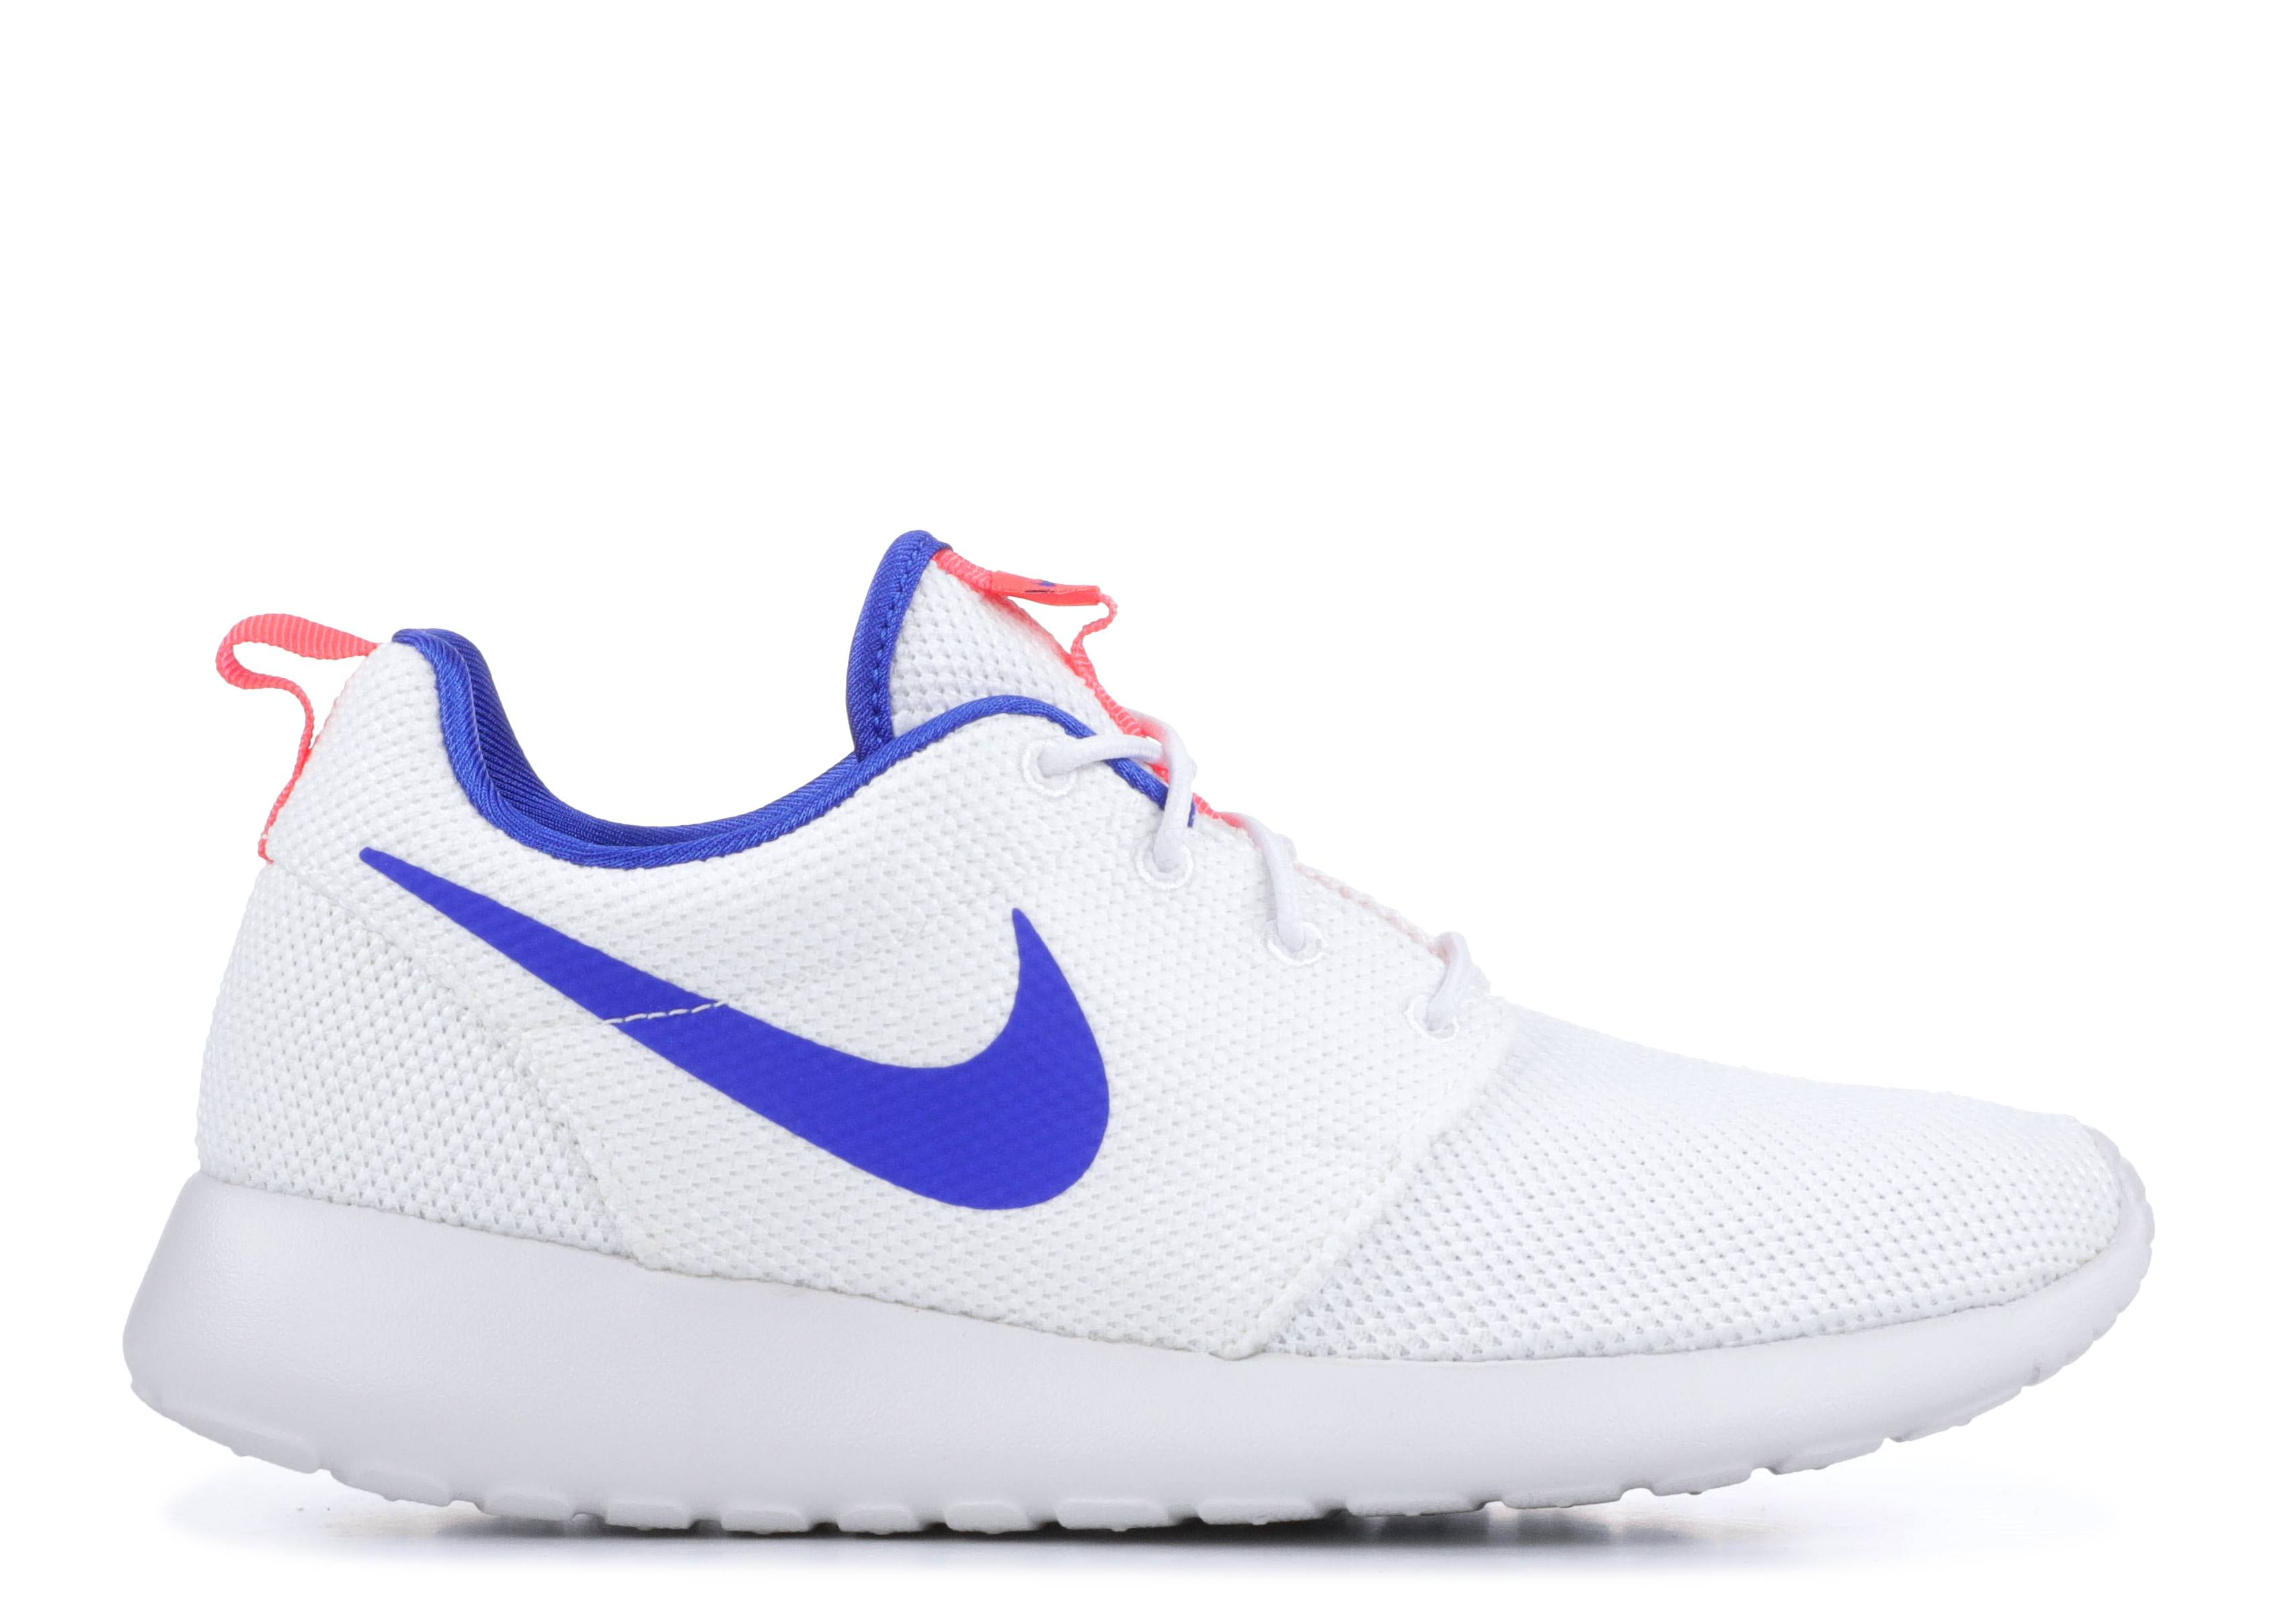 6045adea63526 Nike Roshe One - Nike - 511881 100 - white ultramarine-solar red ...